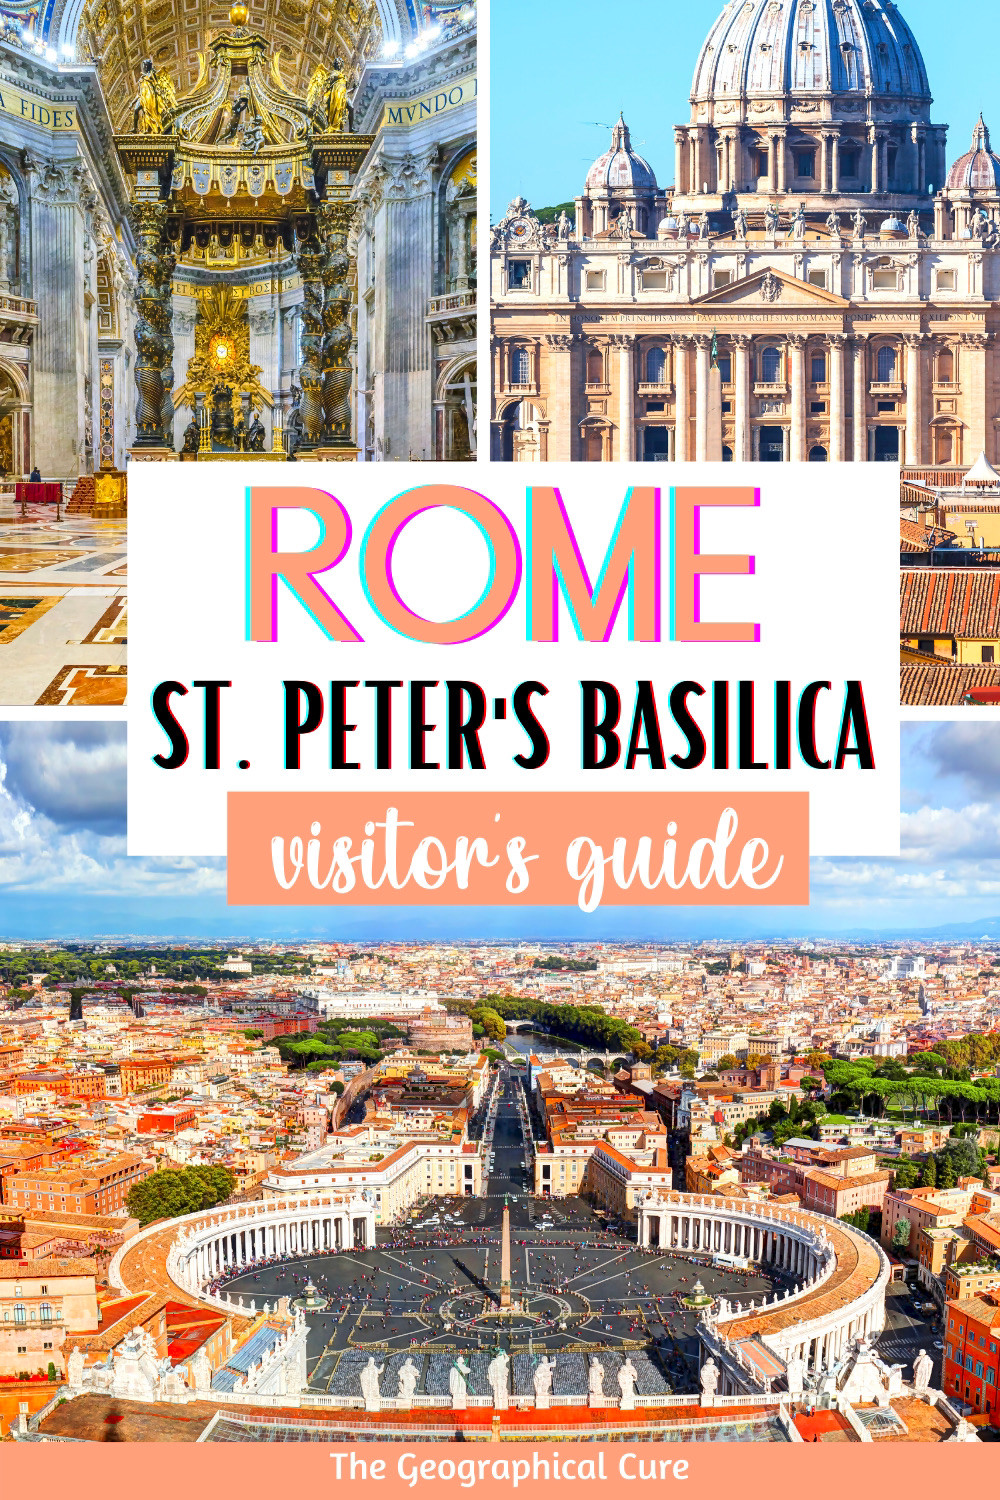 ultimate guide to visiting St. Peter's Basilica in Vatican City